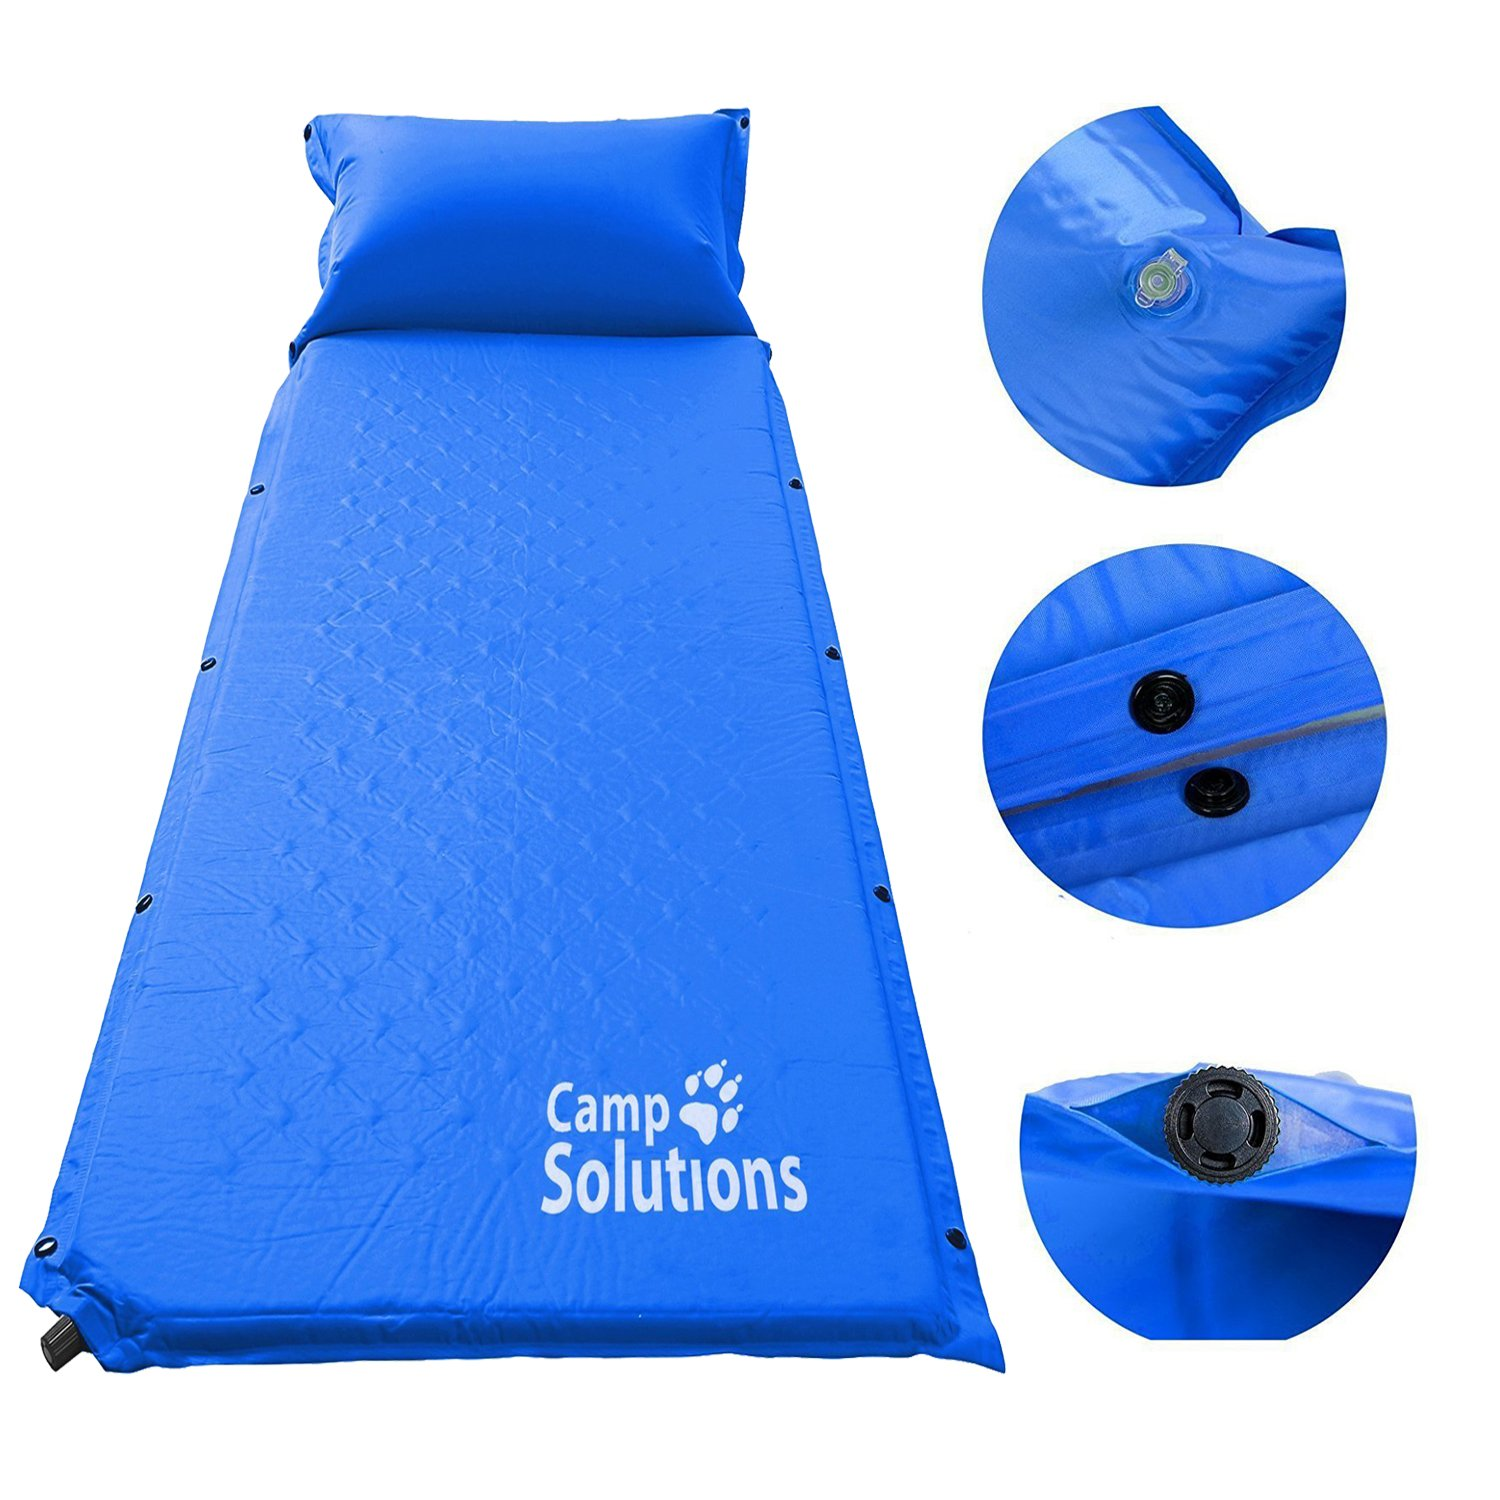 Amazon.com : Camp Solutions Camping Self Inflating Sleeping Pad with  Attached Pillow - Lightweight Air Sleeping Pads : Sports & Outdoors